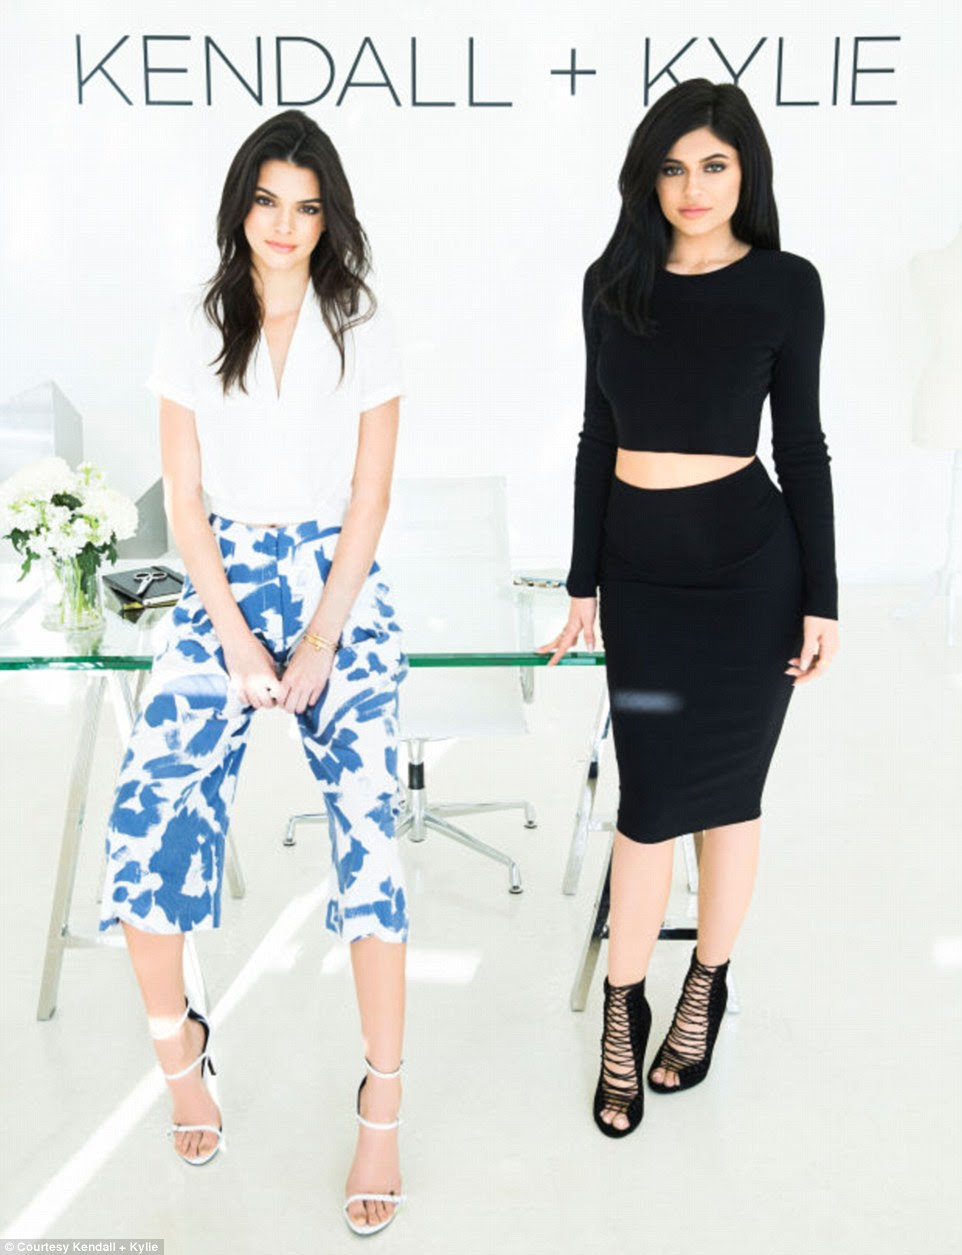 Dream team: Kendall and Kylie Jenner have just unveiled the debut collection from their eponymous Kendall + Kylie line